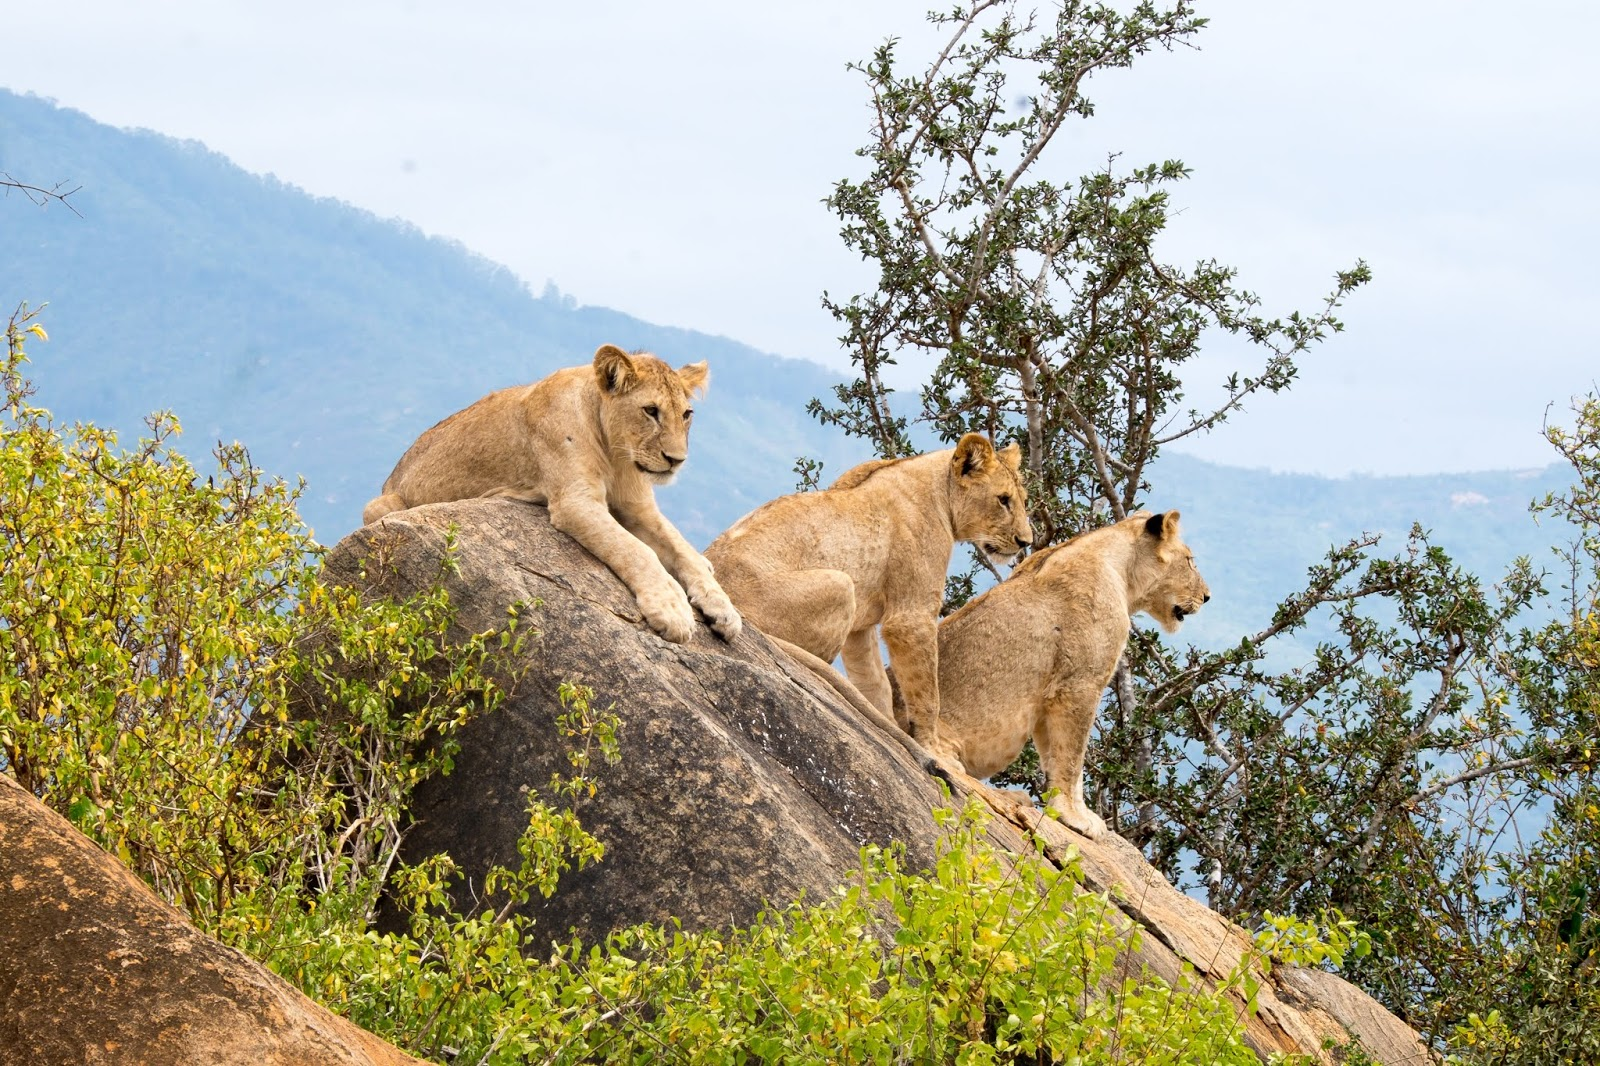 three lions sitting on rock formations at daytime,lion images